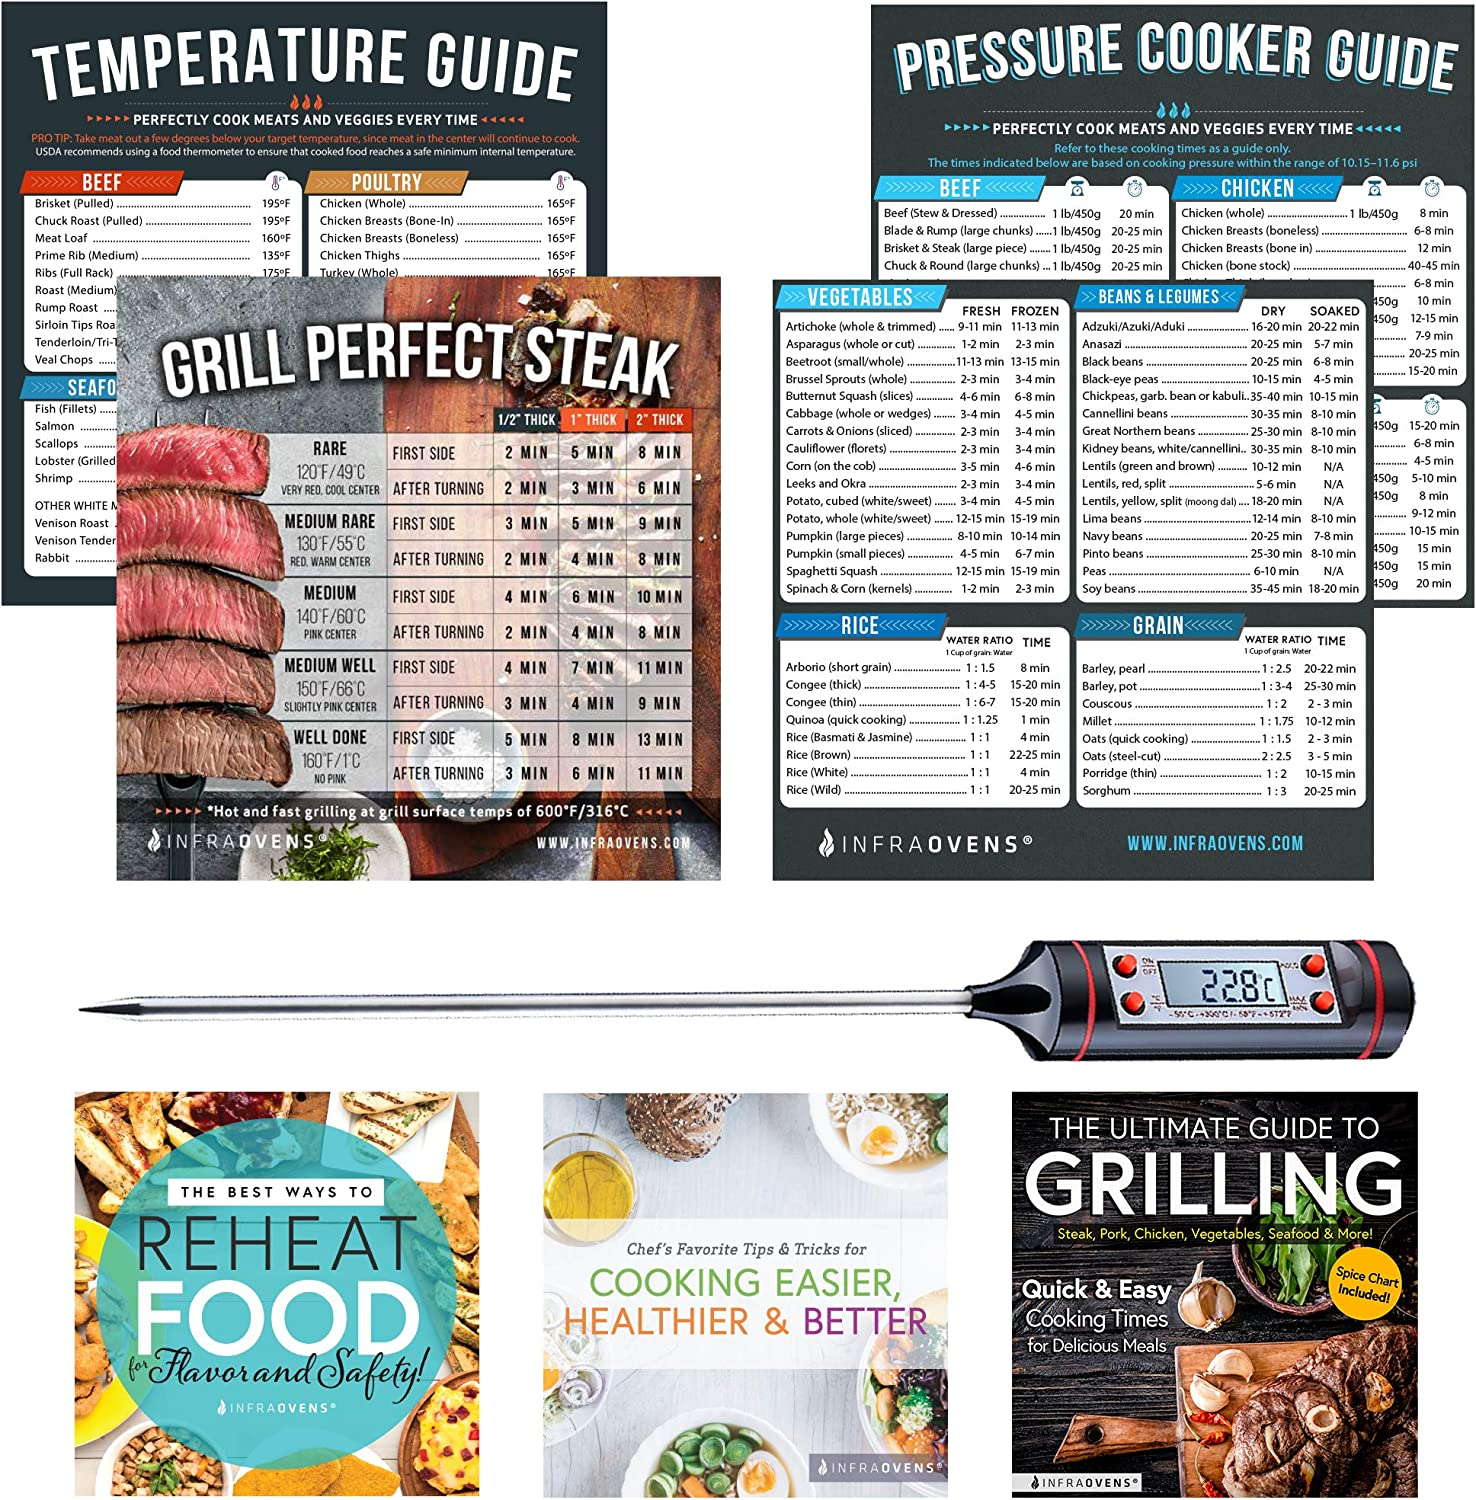 Pressure Cooker Cook Times Cheat Sheet Magnet Accessories, Cookbooks, Baking & Grilling Cooking Guides, Magnetic Temperature Chart for Quick Reference | Compatible with Instant Pot + Food Thermometer